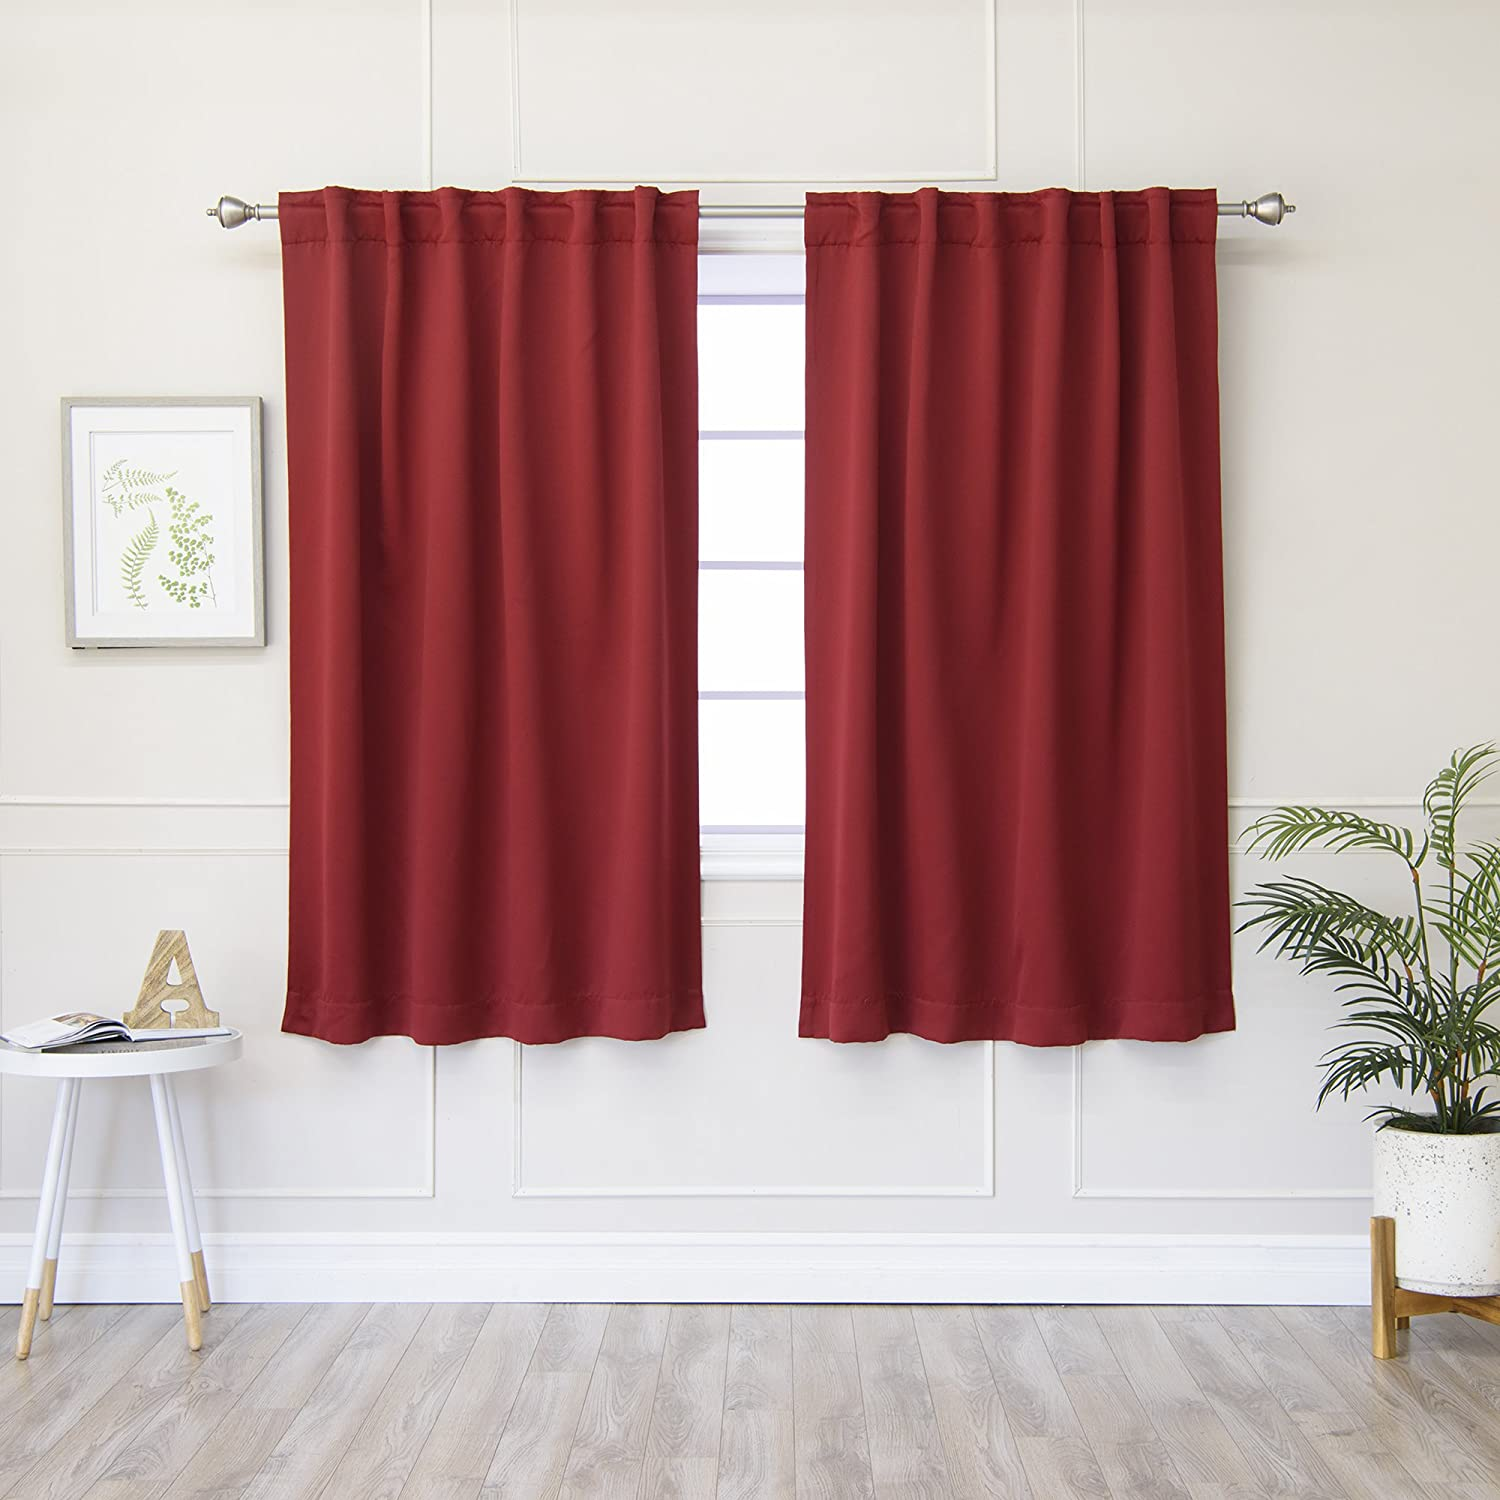 pencil caramel up eyelet archives betty off lined imperial sale ring curtains ringcushion rooms jacquard to curtain fully product